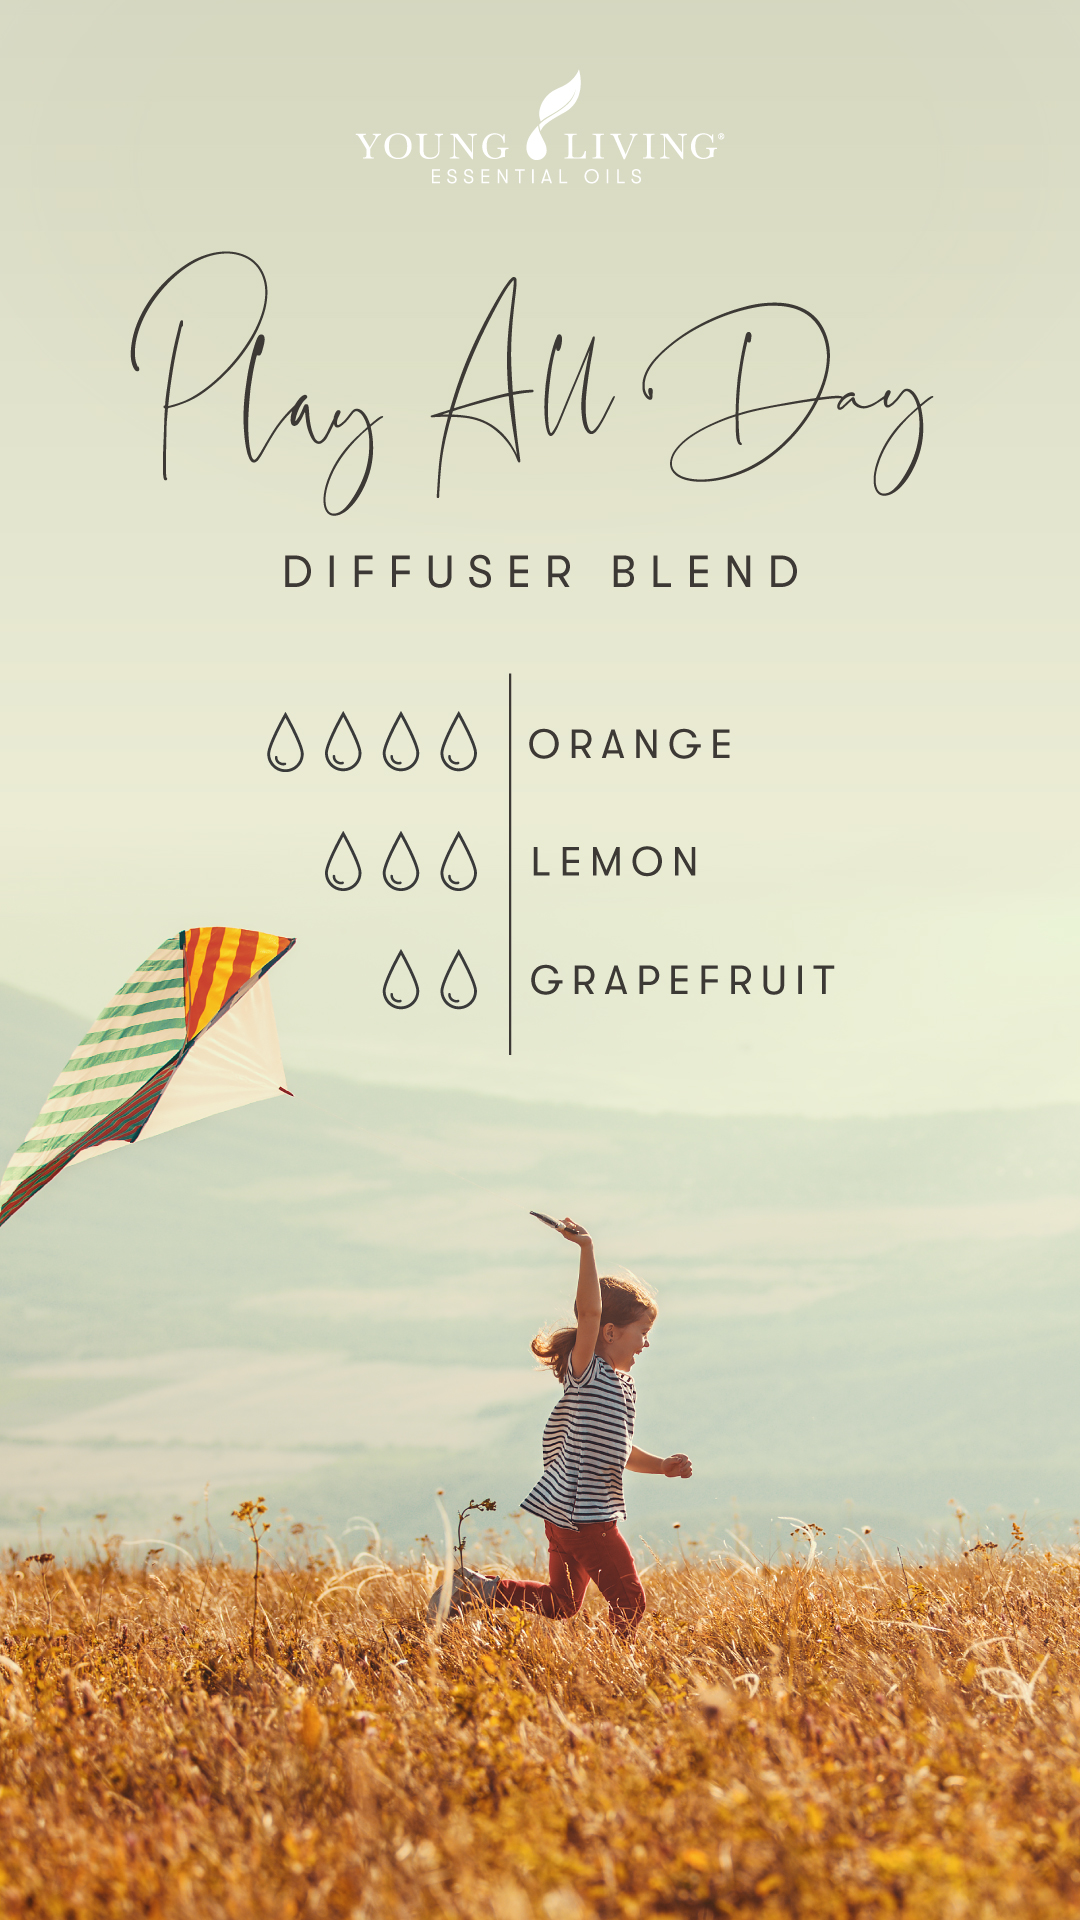 Play All Day diffuser blend - Young Living Essential Oils